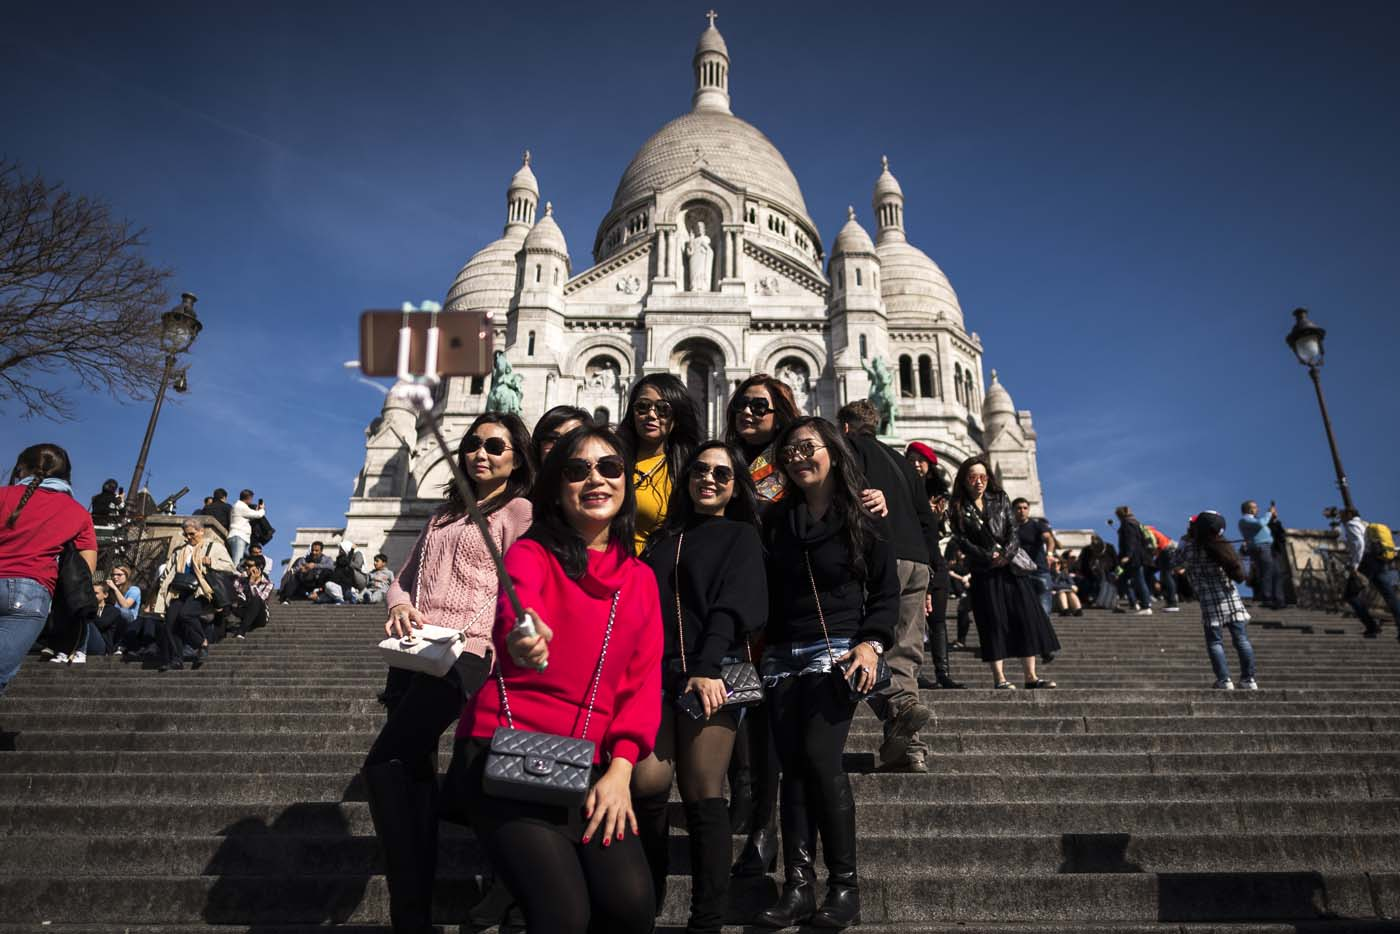 (FILES) This file photo taken on March 30, 2017 shows tourists taking selfie pictures in front of the Sacre Coeur basilica ontop of the Paris landmark district of Montmartre in Paris. After a decline in 2016 due to the terror attacks in Paris and Nice, tourism in Paris and Ile de France is in much better shape in the first half of 2017, with 1,5 million tourists and 3,3 million overnight stays more than a year ago. / AFP PHOTO / Lionel BONAVENTURE